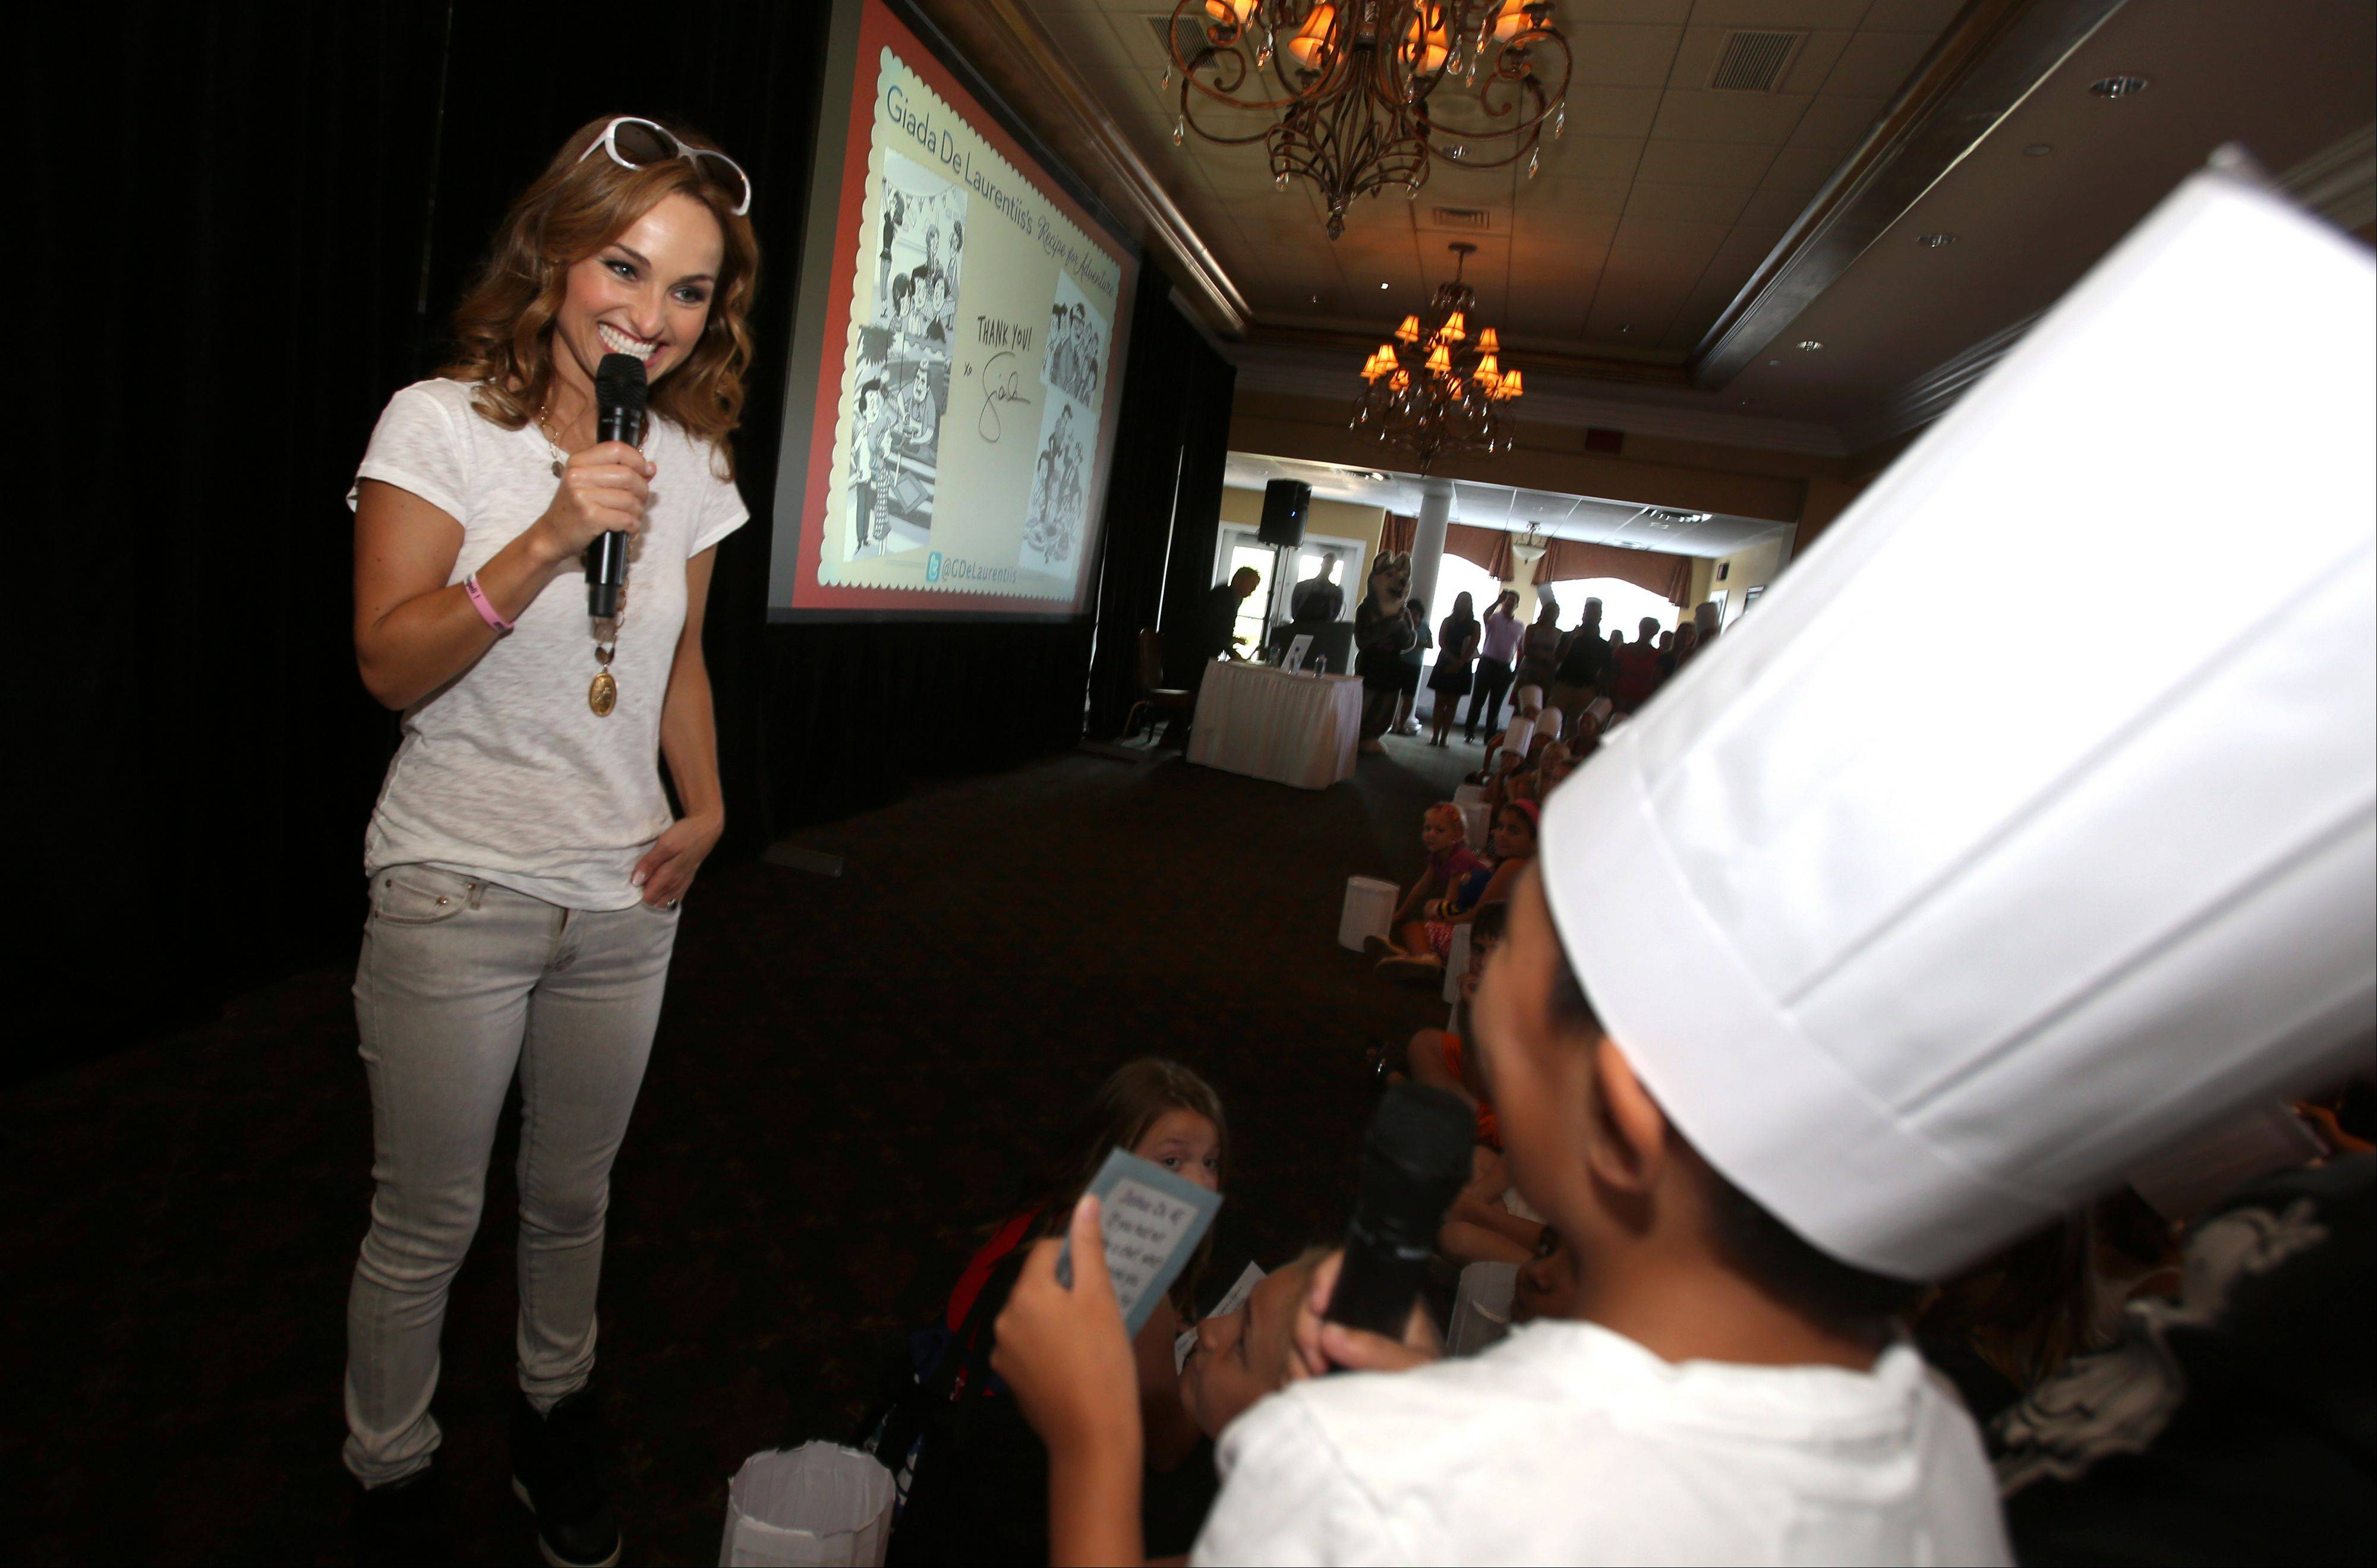 Student Joshua Chi asks a question of Food Network star Giada De Laurentiis, who visited with students from White Eagle School in Naperville.